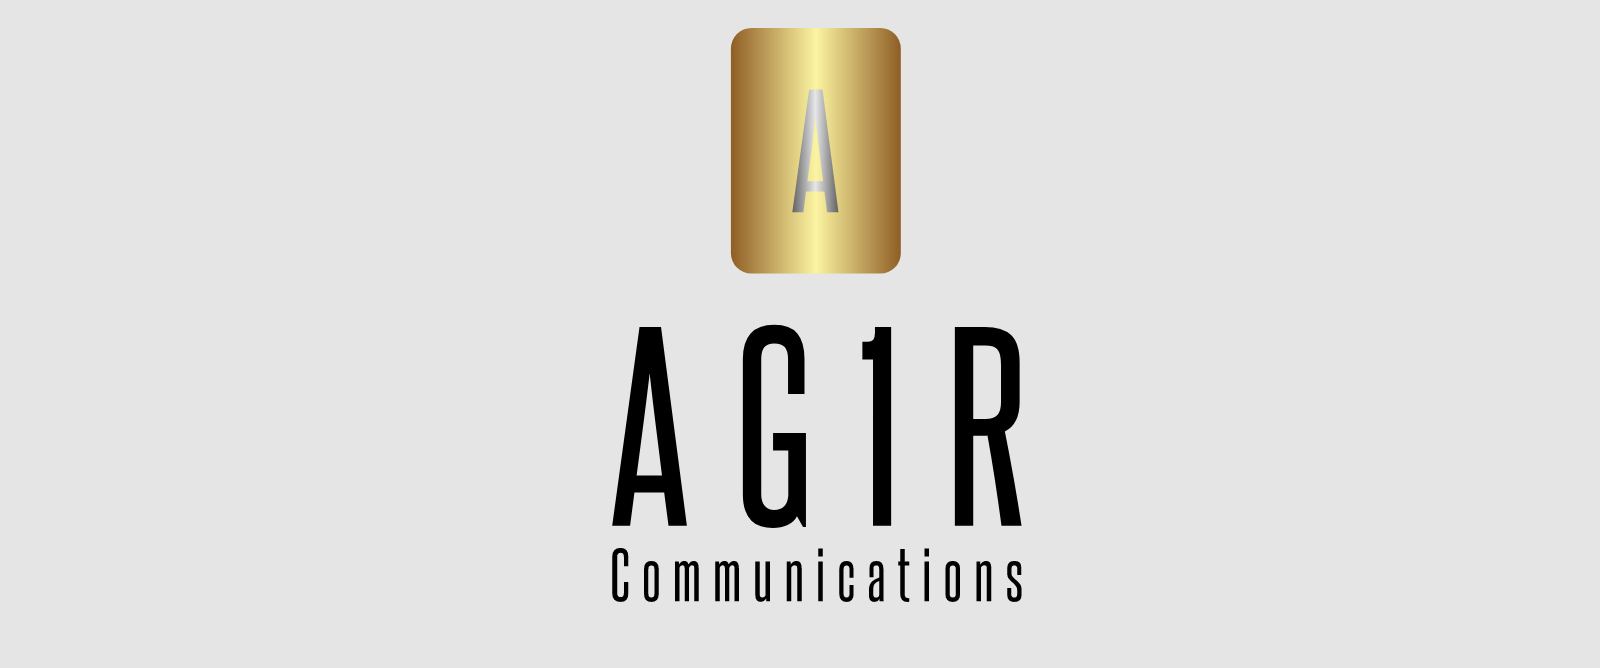 AG1R Communications